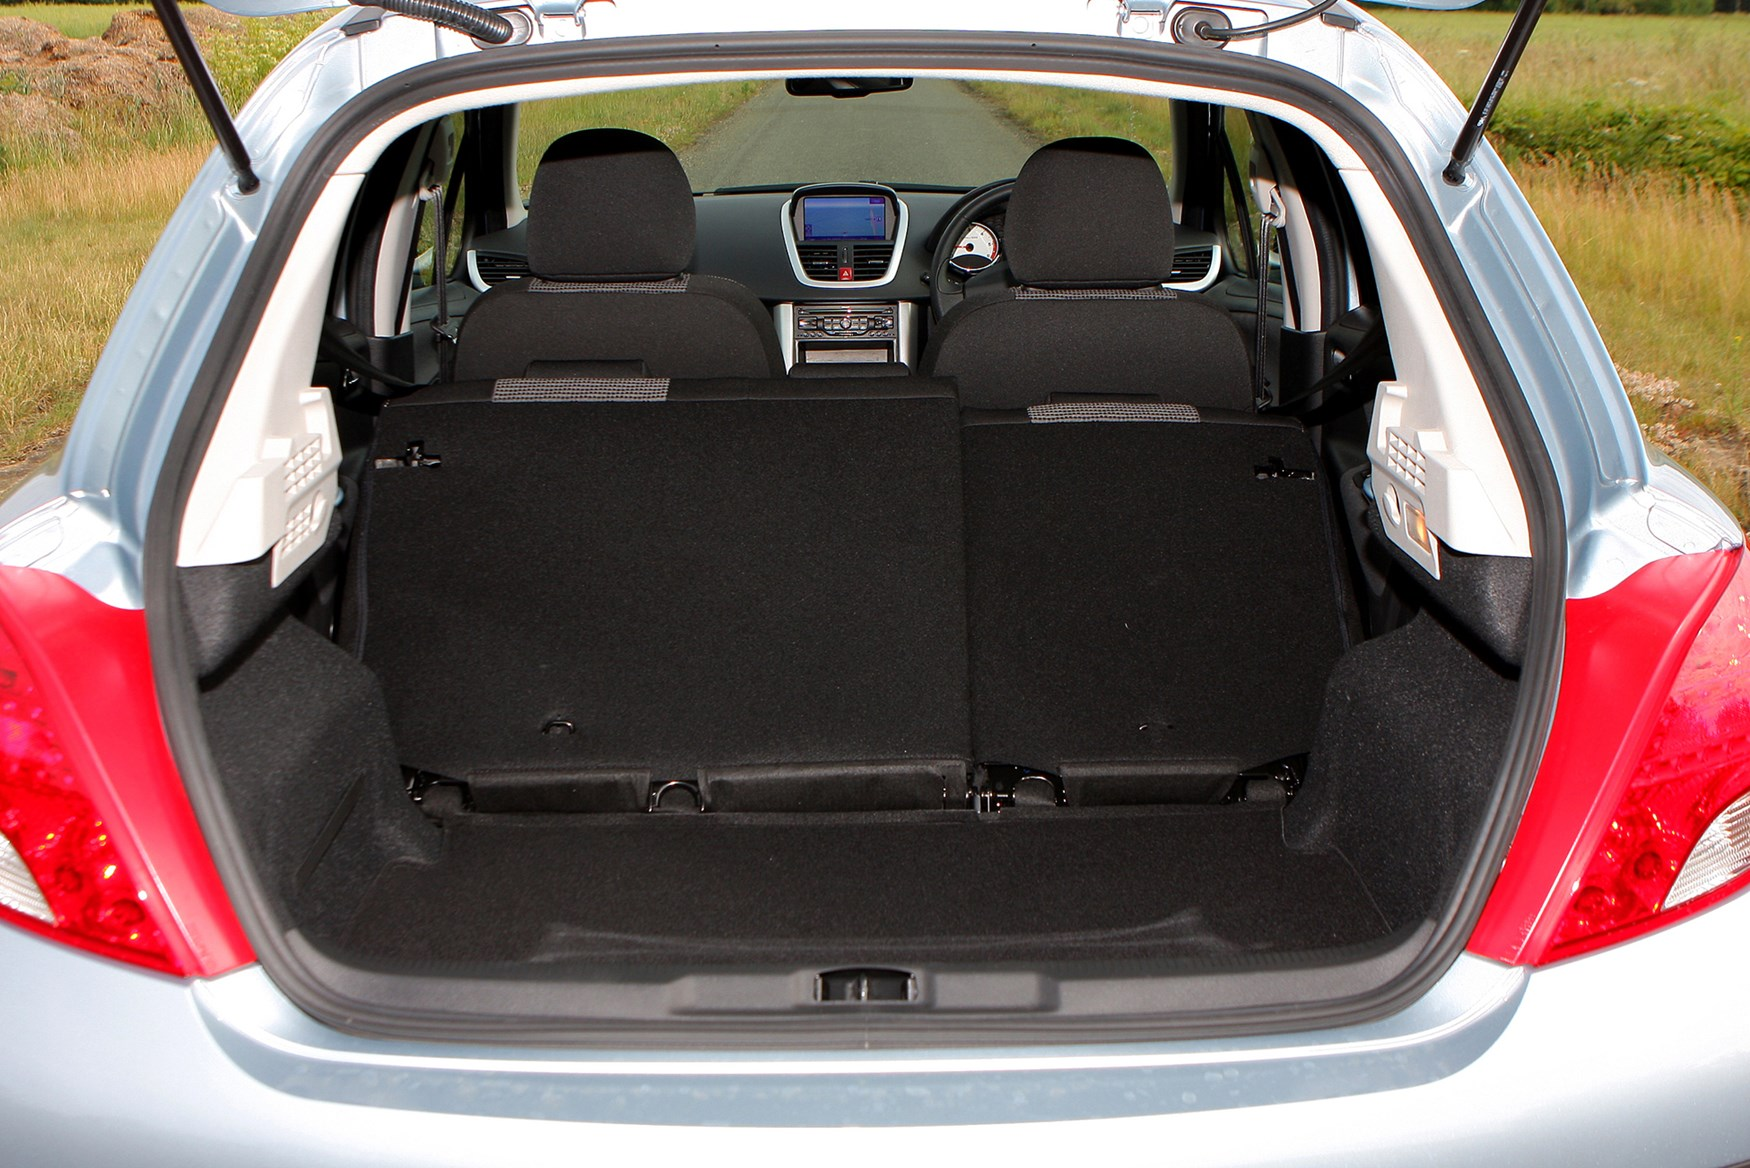 peugeot 207 hatchback 2006 2012 features equipment and accessories parkers. Black Bedroom Furniture Sets. Home Design Ideas